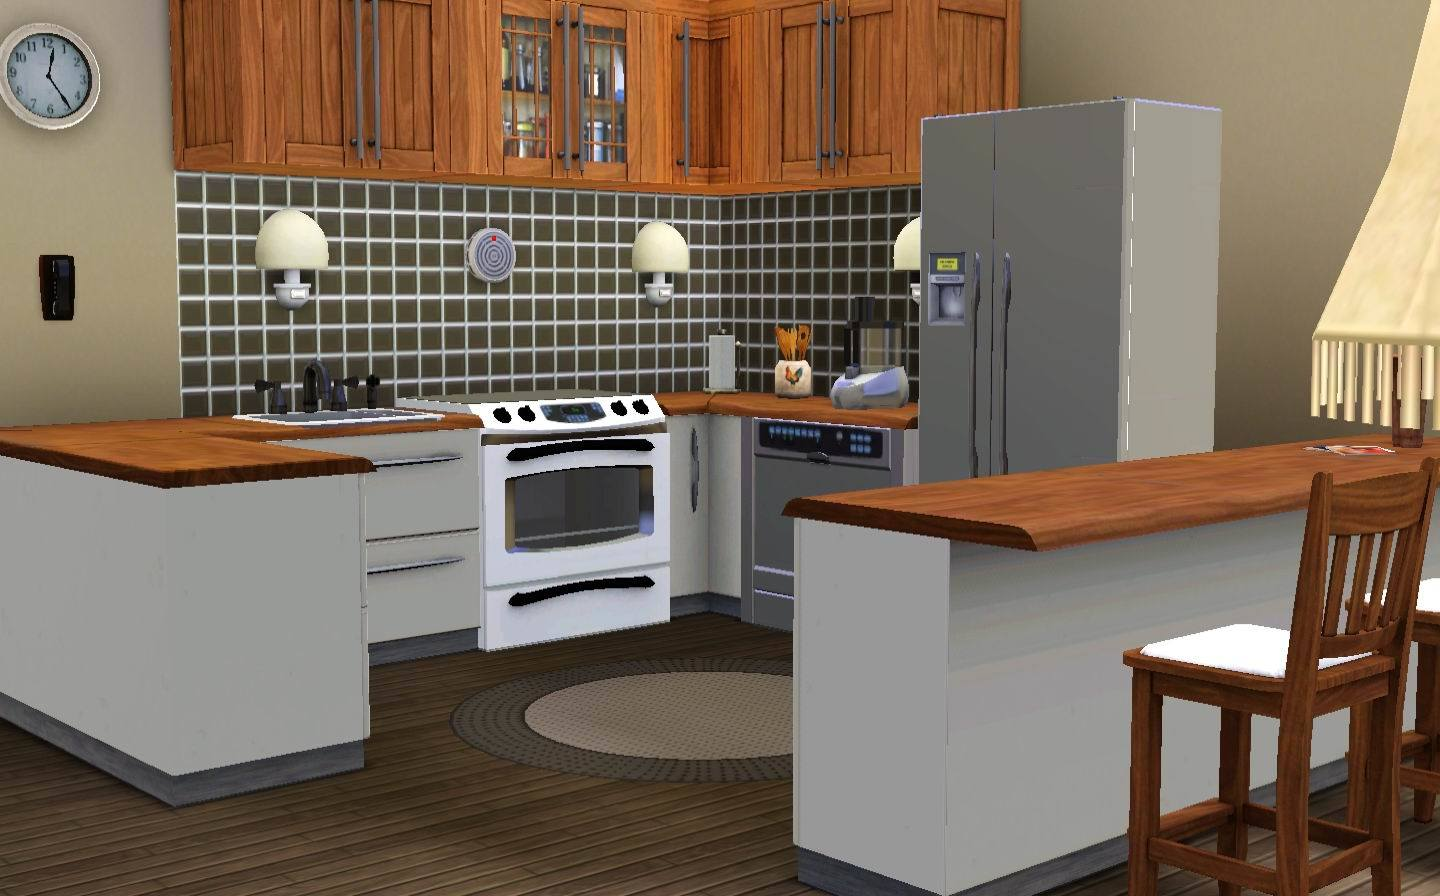 Ash Solid Wood Kitchen Cabinet Doors-Ash Solid Wood Kitchen